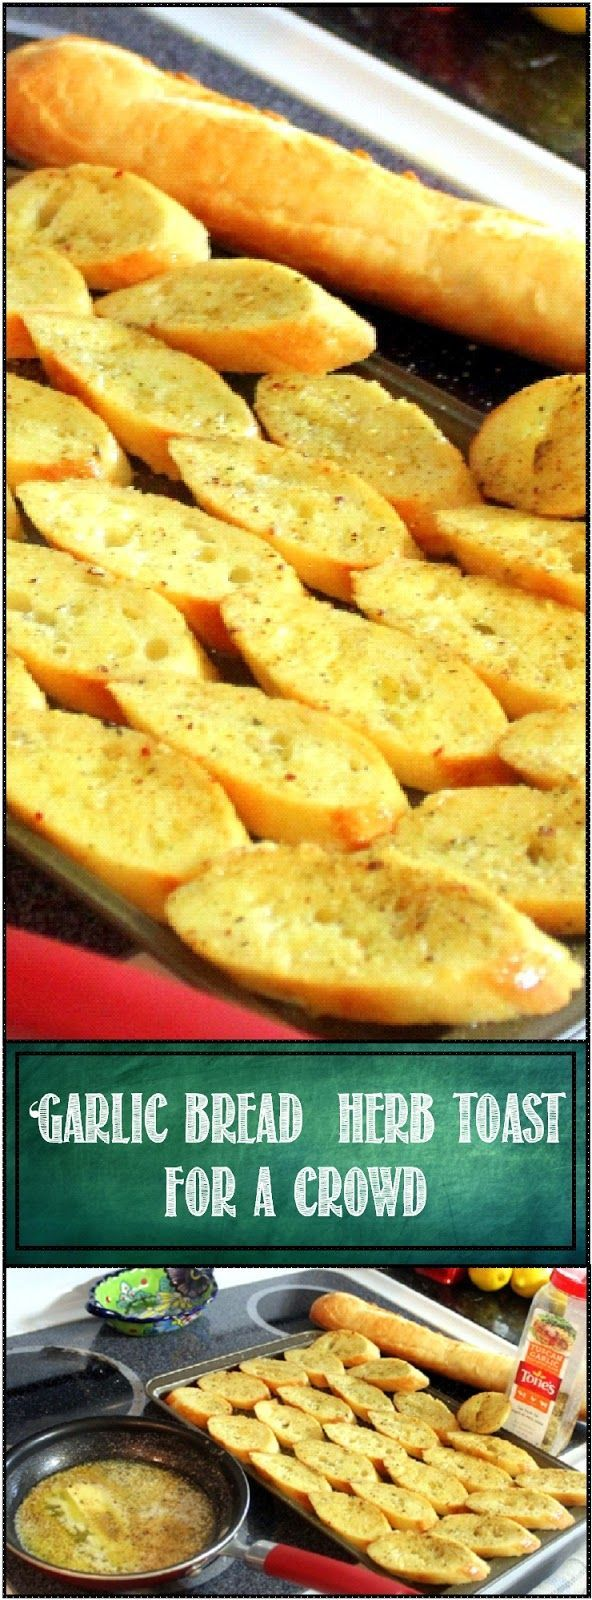 awesome Garlic Bread (Herb Toast) for a Crowd - FAST EASY CHEAP - 52 Church Potluck and Catering Appetizers or Side Dishes